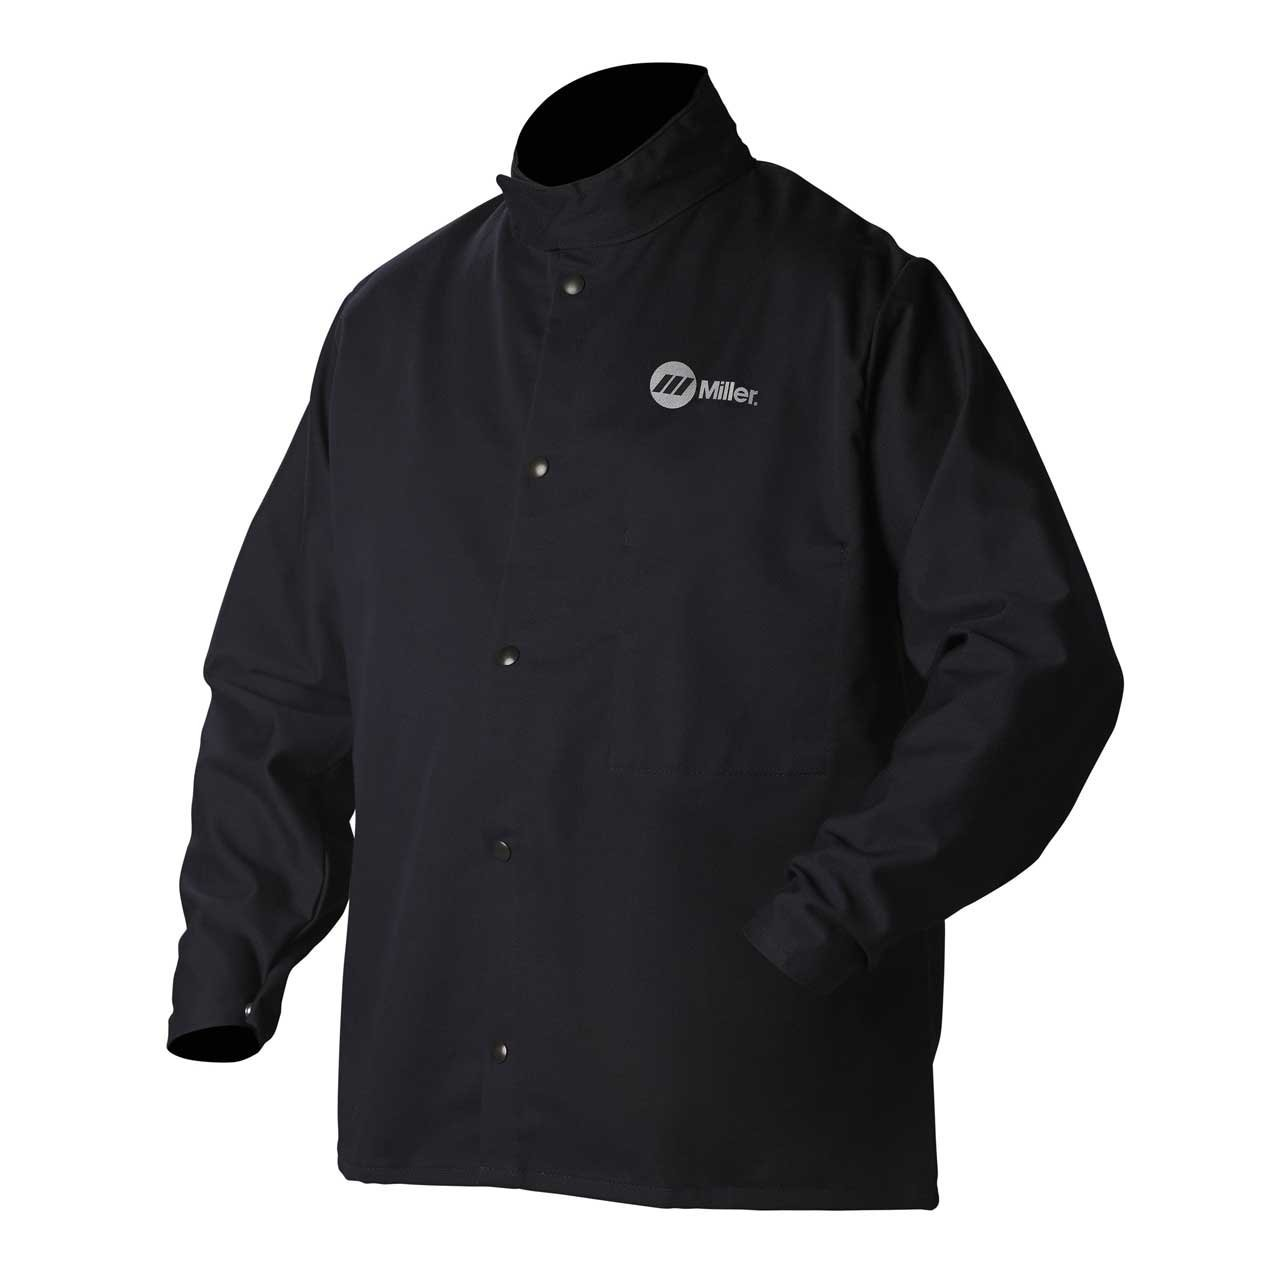 Welding Jacket, Navy, Cotton/Nylon, L